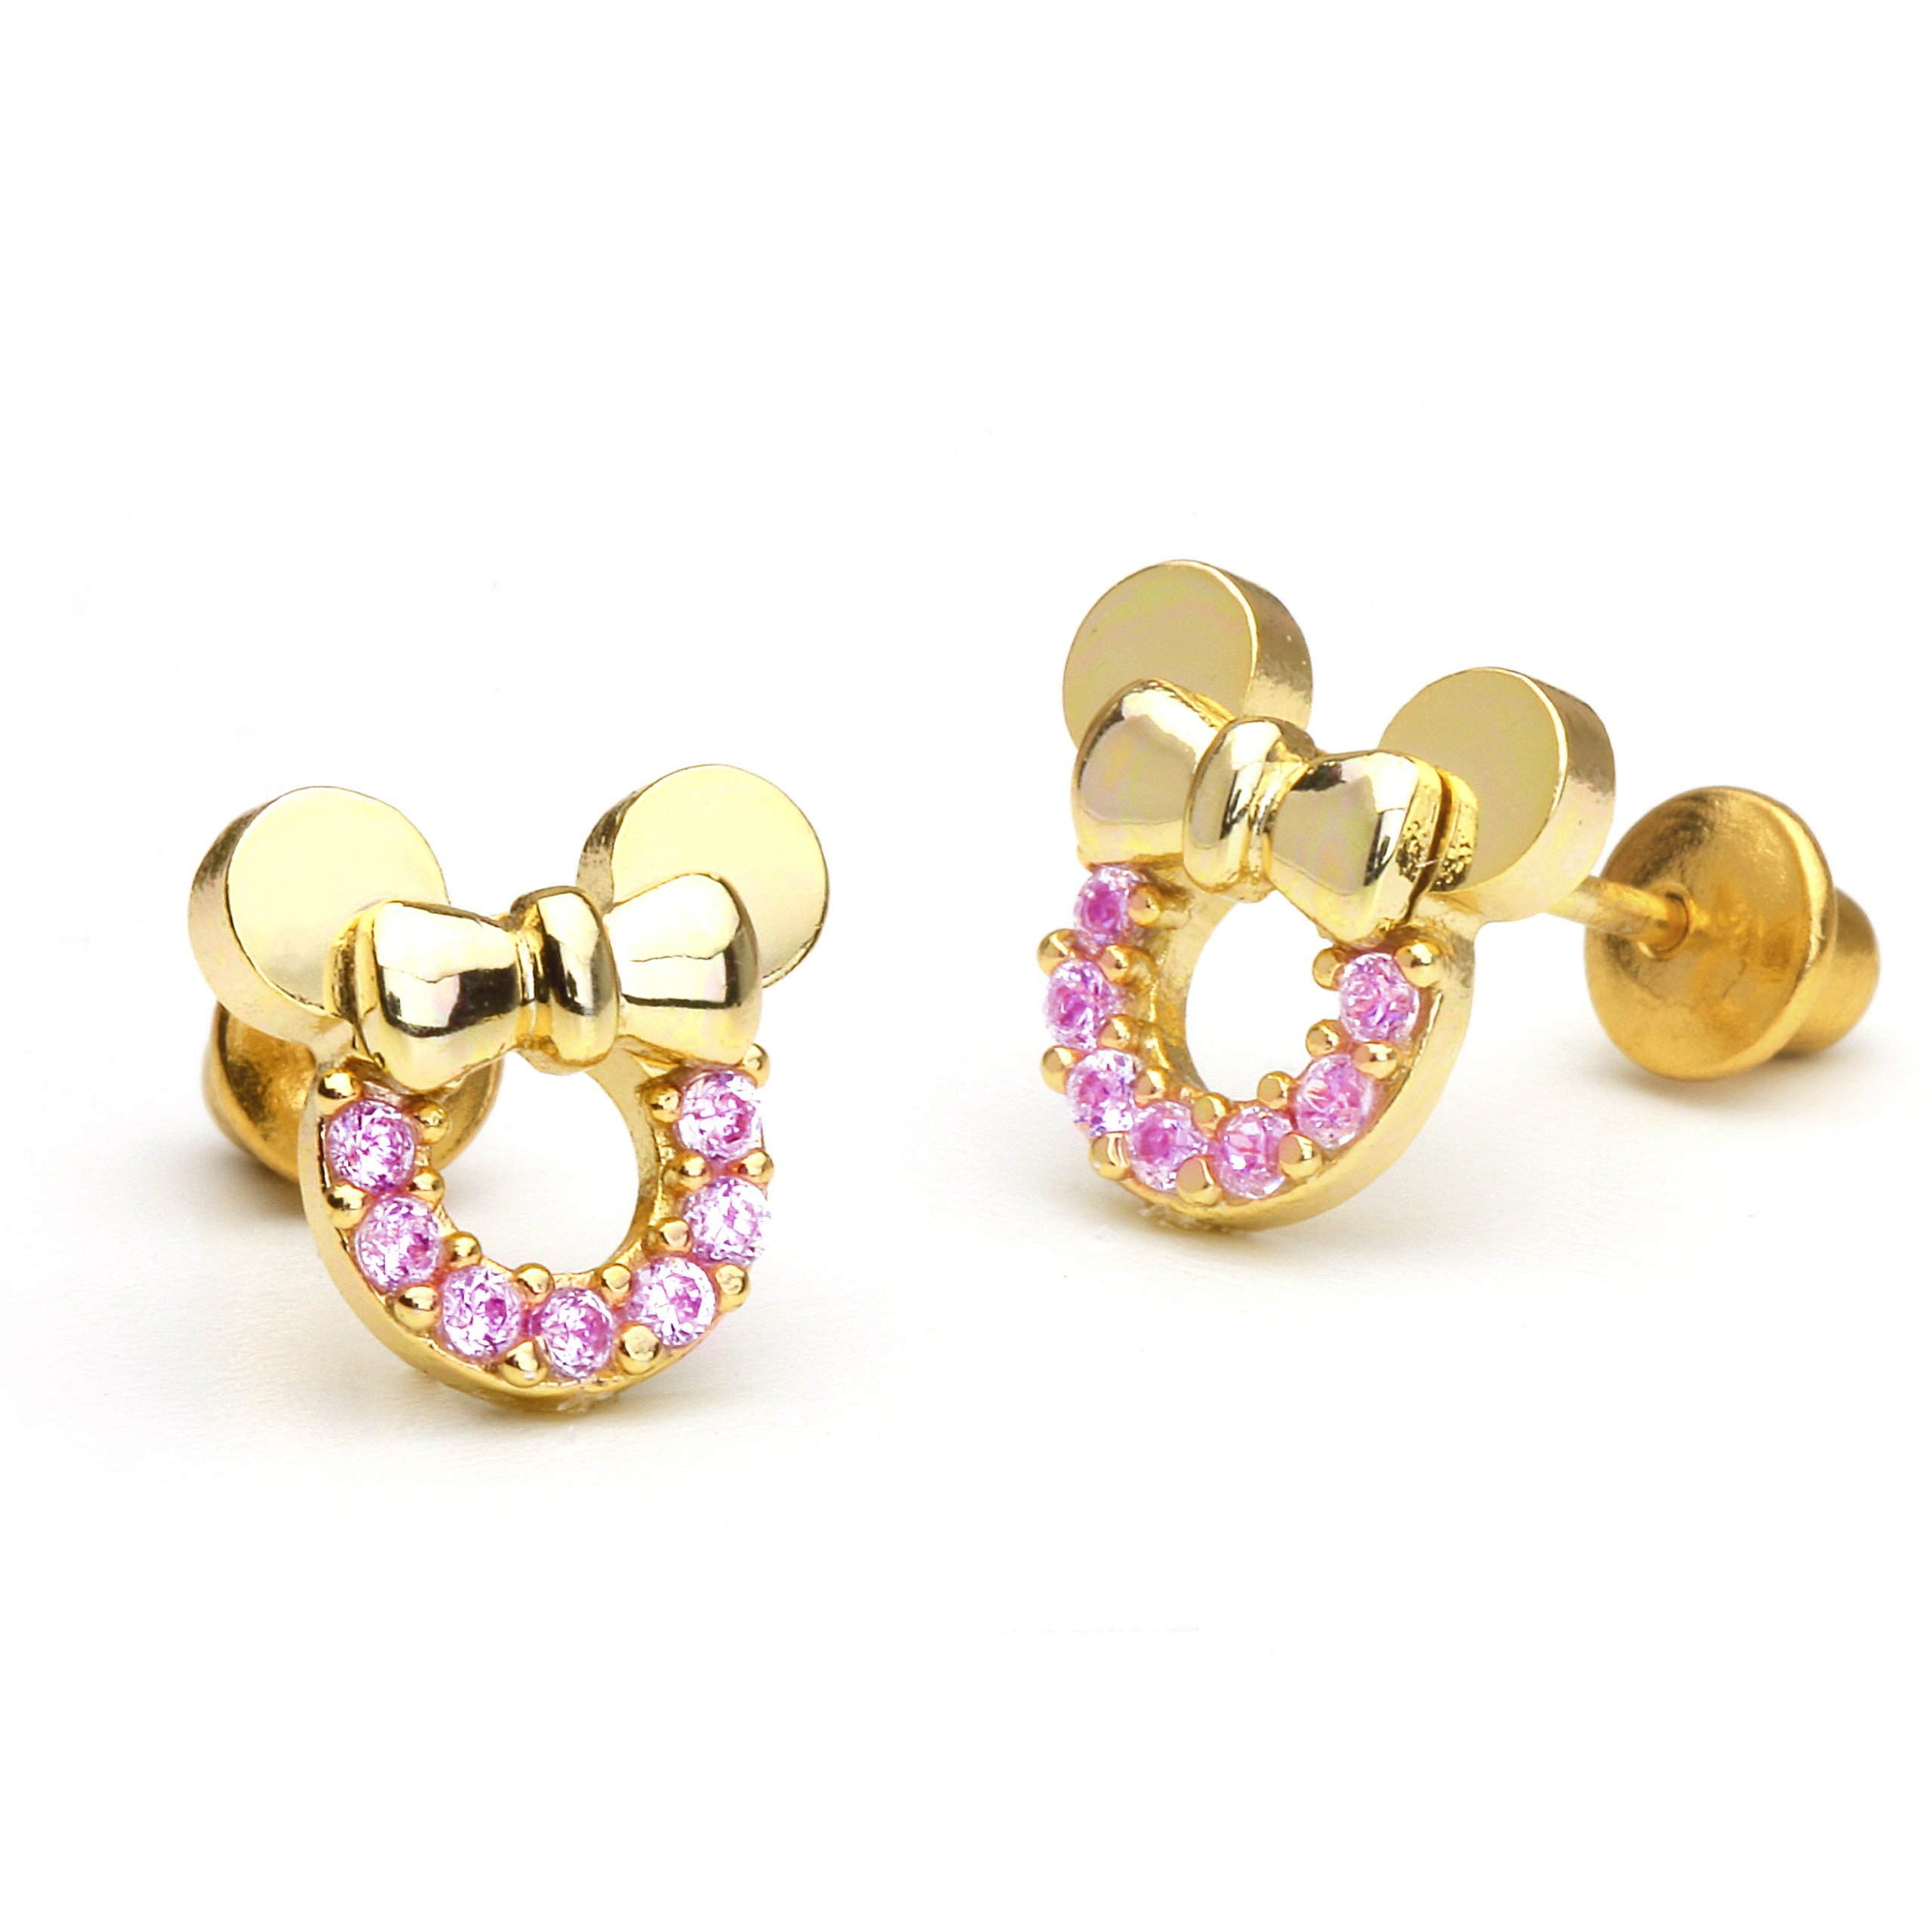 14k Gold Plated Brass Pink Mouse Cubic Zirconia Screwback Earrings with Sterling Silver Post